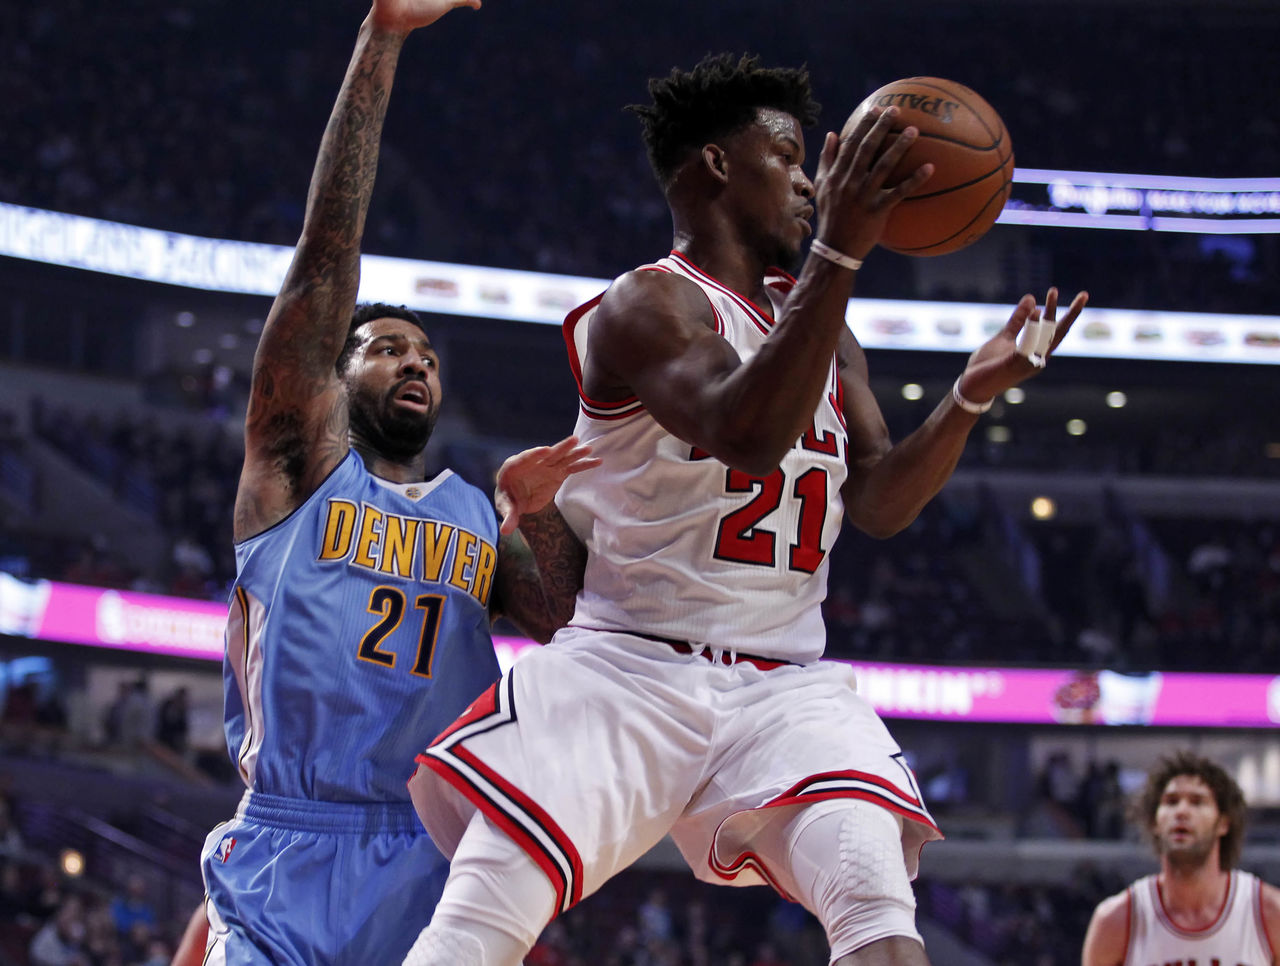 Cropped 2017 03 01t013201z 1245254588 nocid rtrmadp 3 nba denver nuggets at chicago bulls